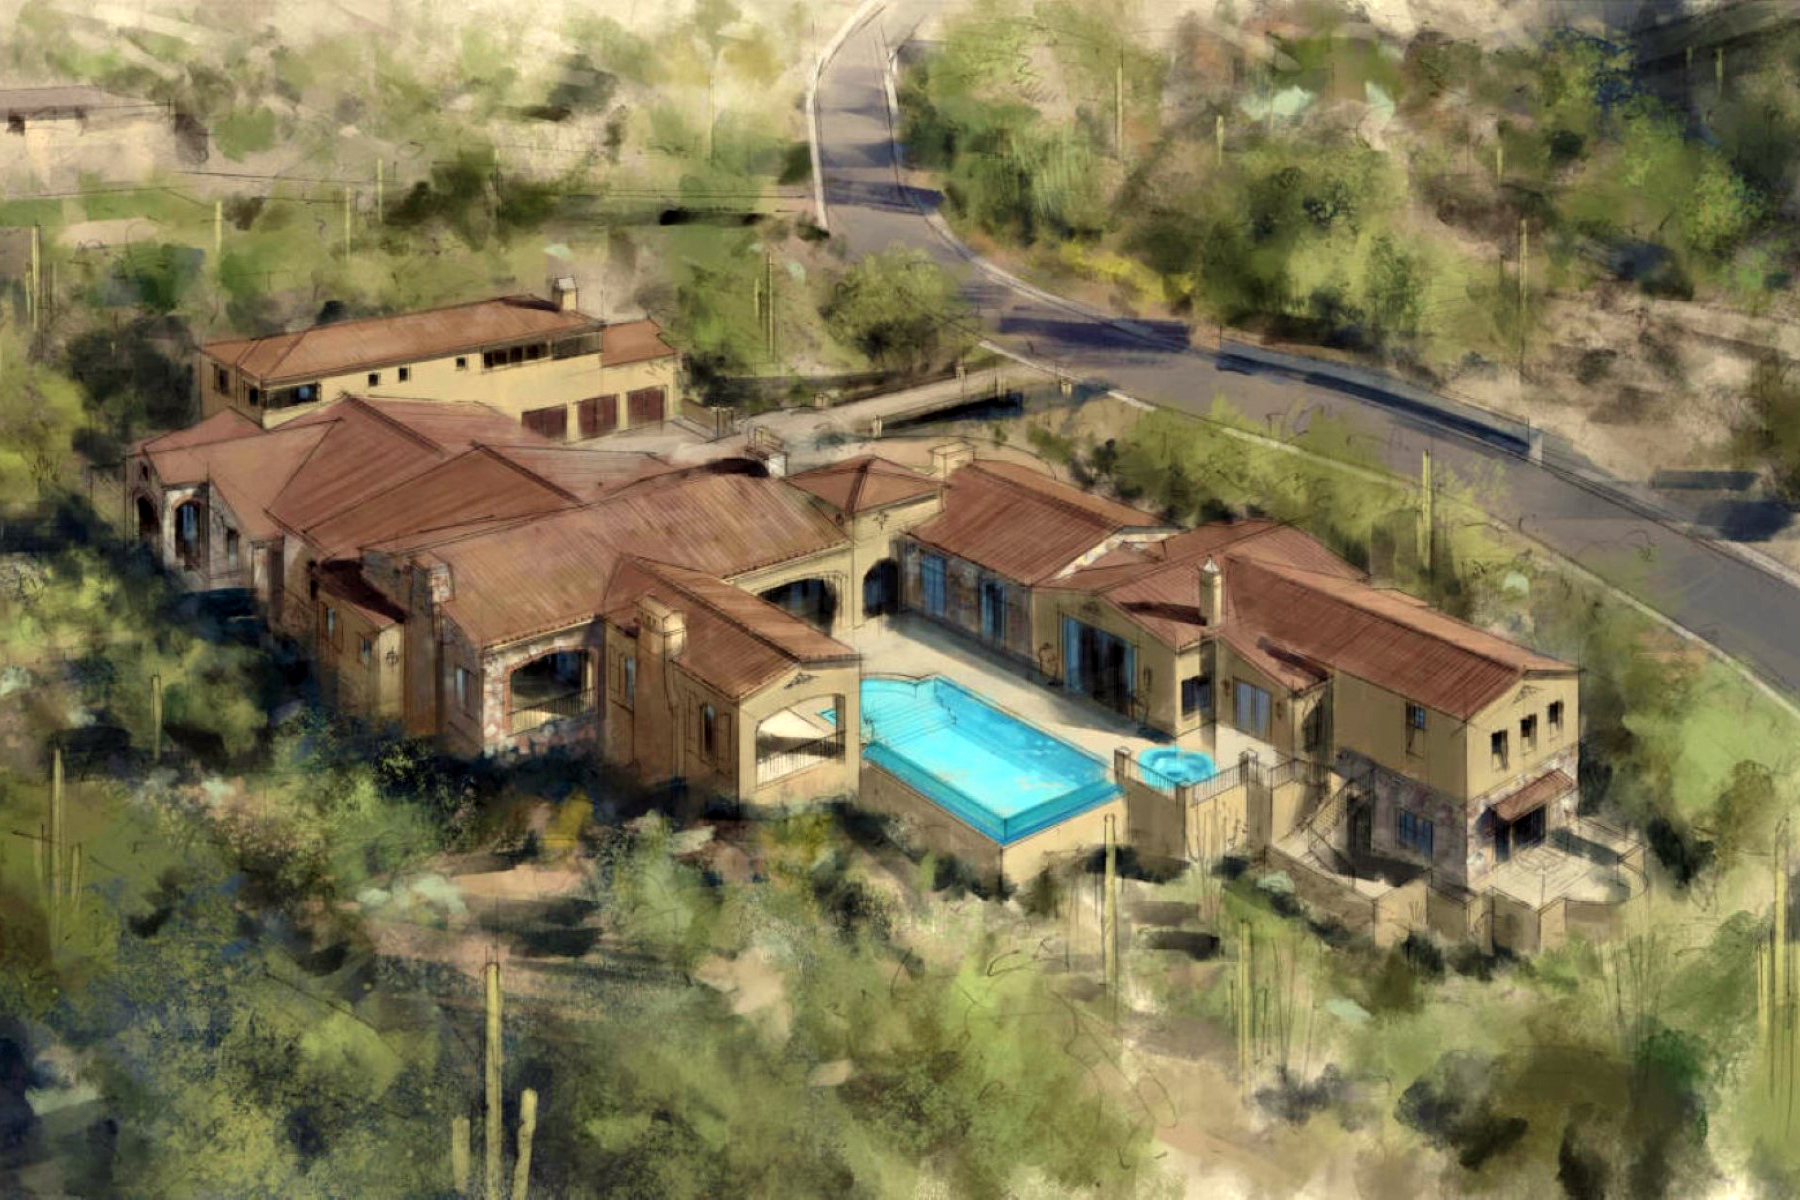 Single Family Home for Sale at Stunning Silverleaf Luxury New Build With Valley Views 11004 E Feathersong Lane Scottsdale, Arizona 85255 United States